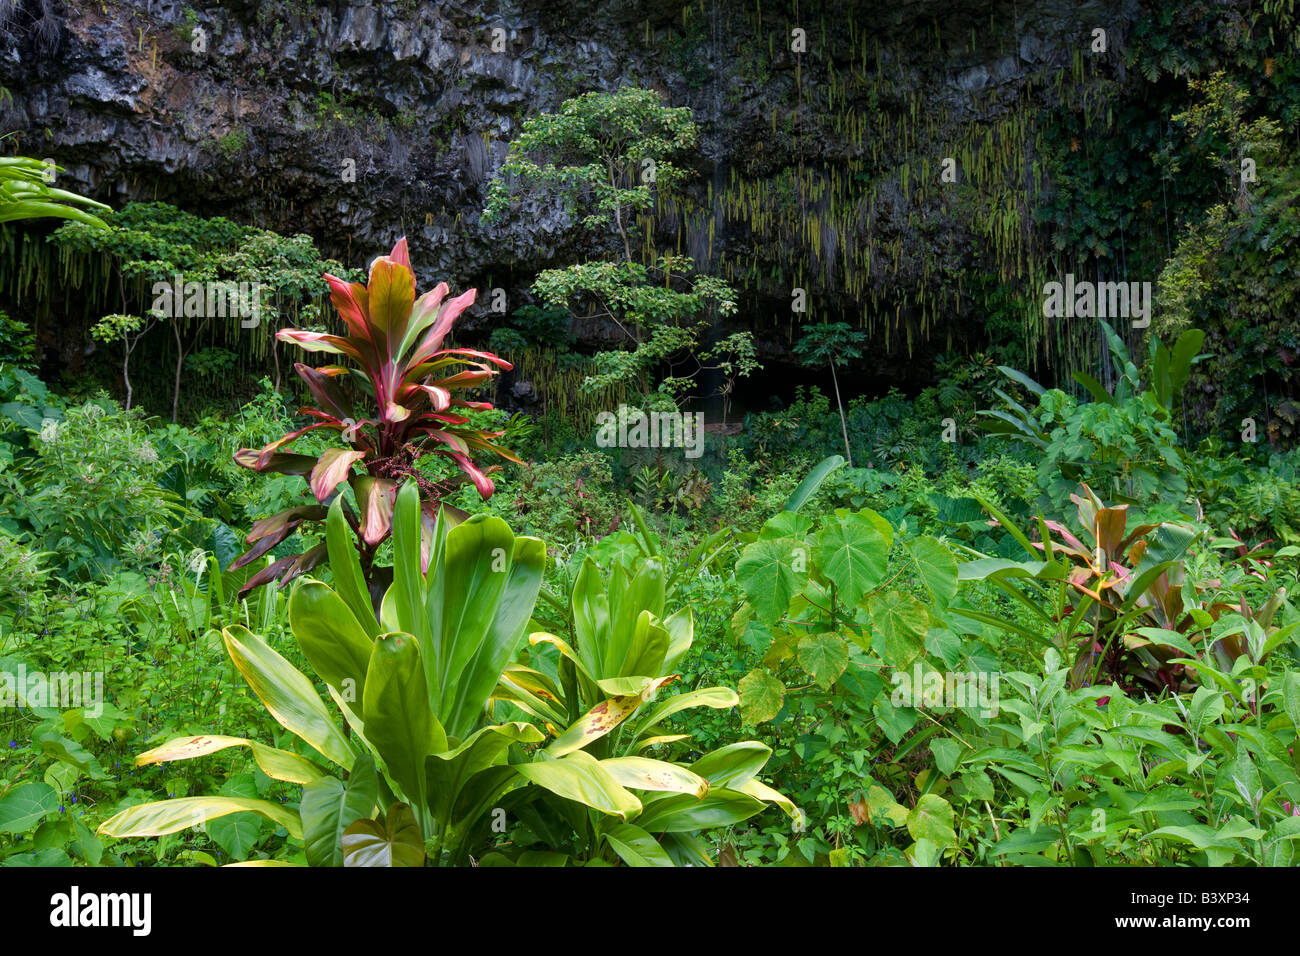 Ferns in Fern Grotto Kauai Hawaii - Stock Image